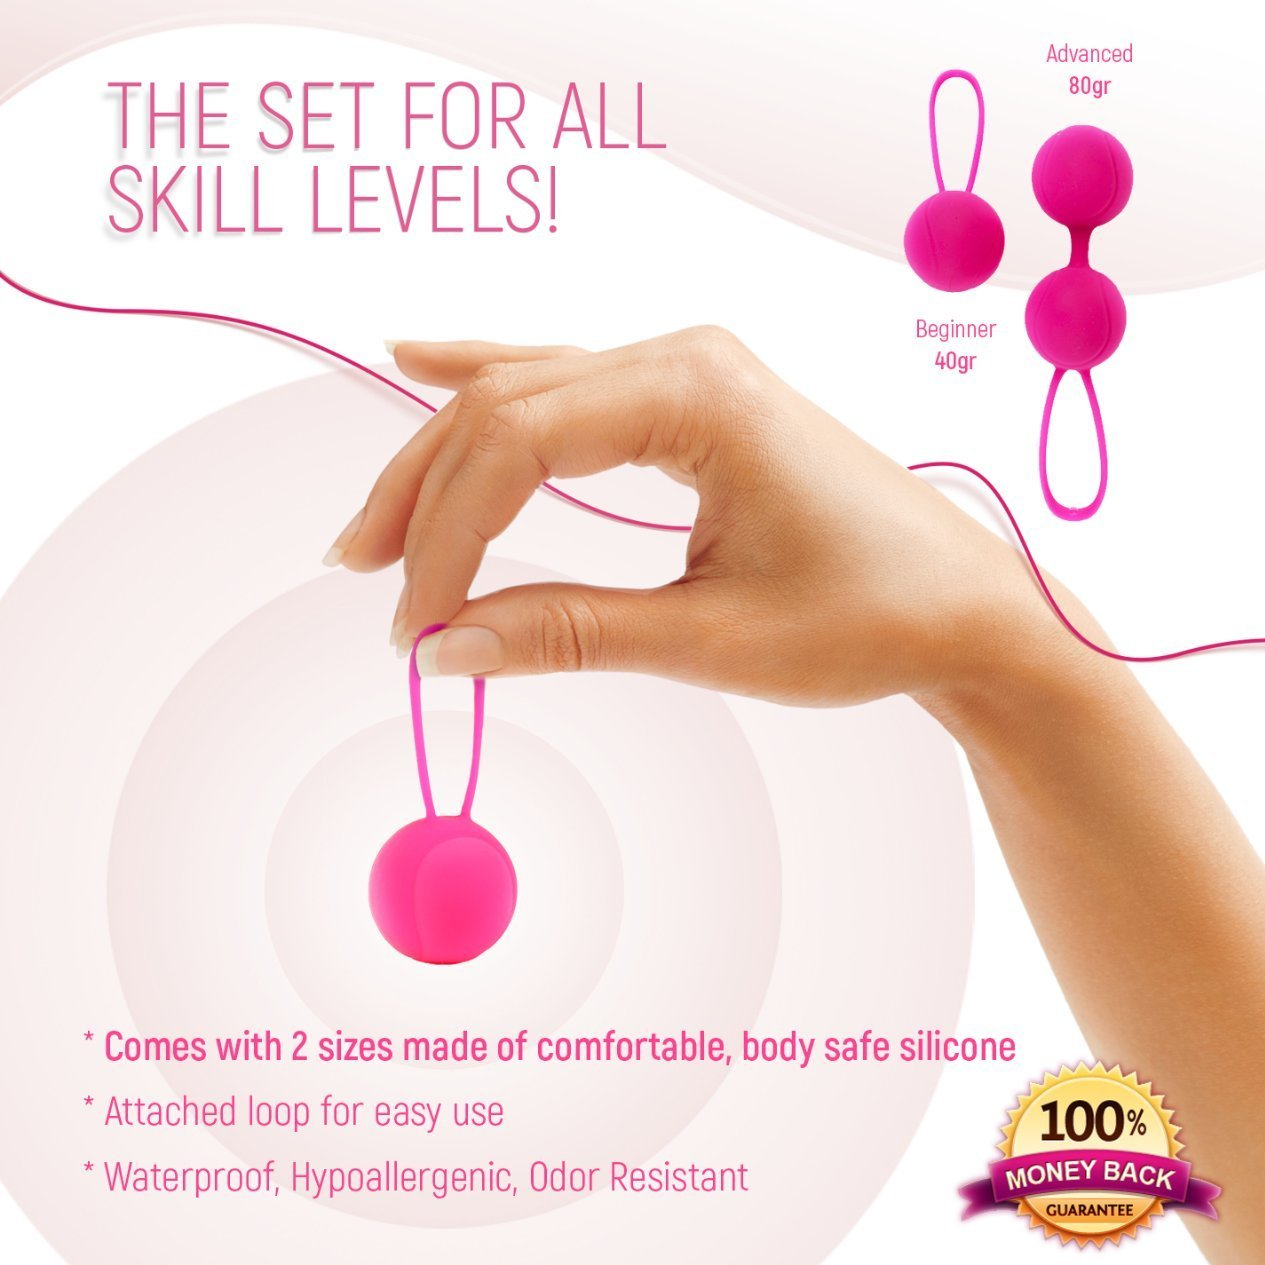 Kegel Balls for Beginners & Advanced Kegel Weights for Women Pelvic Floor Muscle Exercise, Bladder Control, Post Pregnancy Childbirth Recovery Ben Wa Balls Sets Yoni Egg for Sexual Health